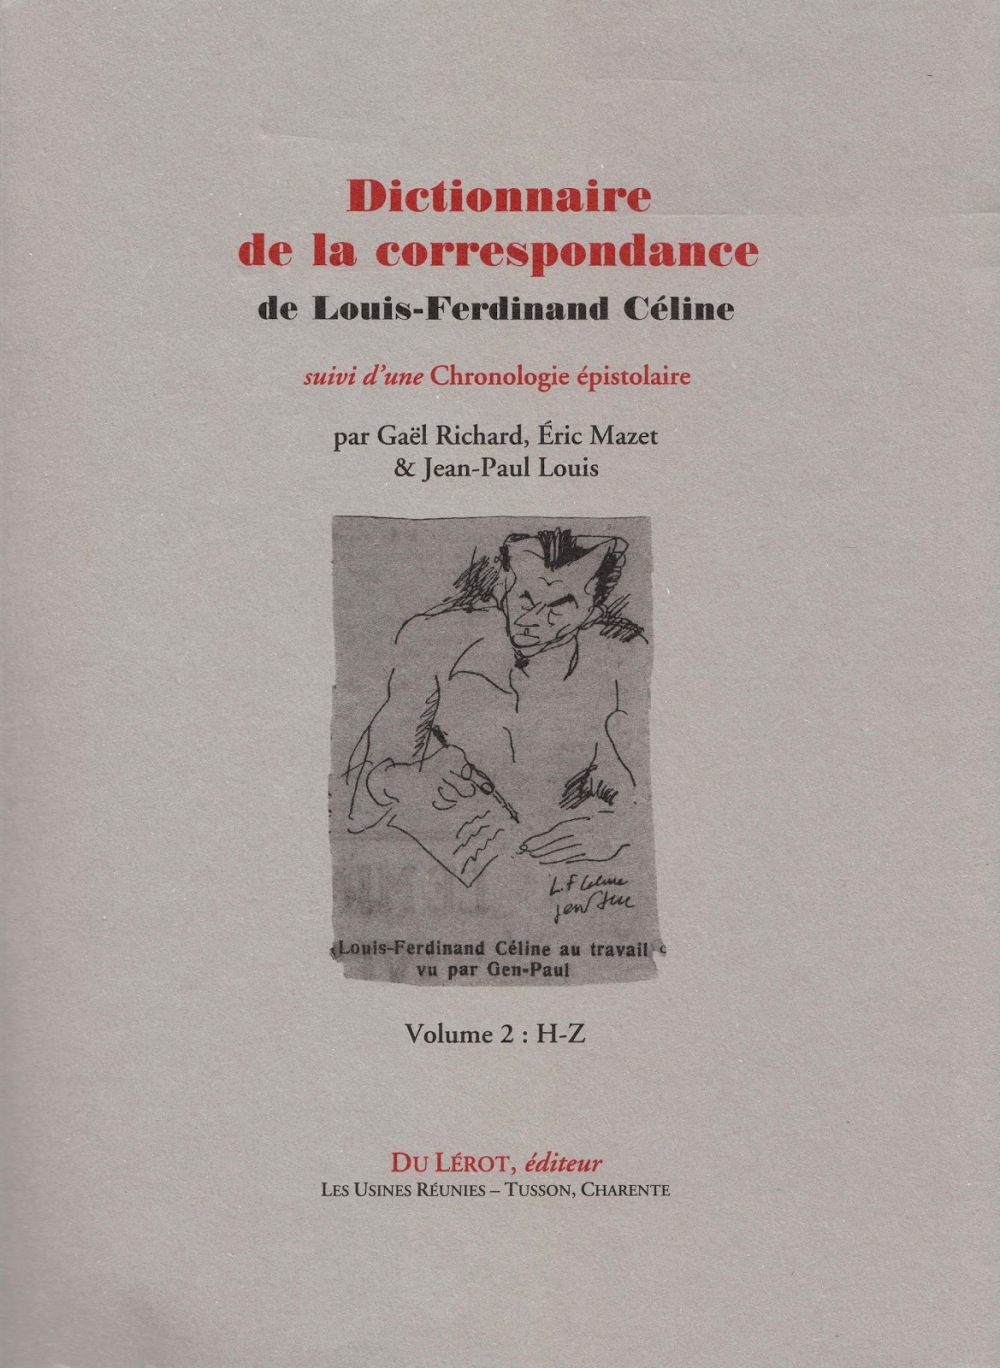 dictionnaire-correspondance-richard-mazet-louis